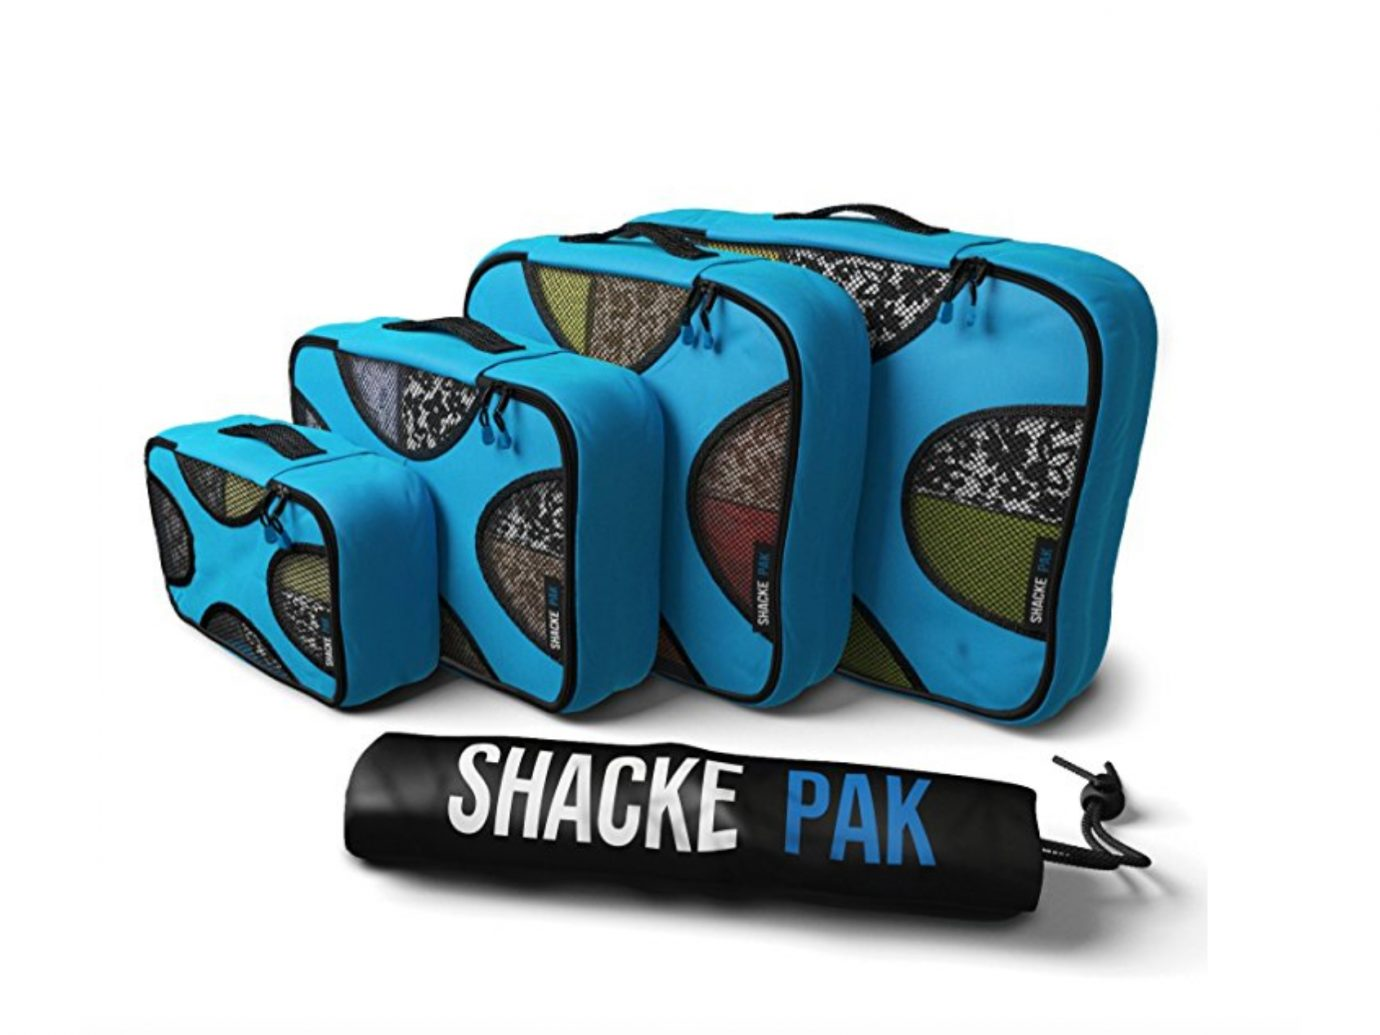 4 pack of packing cubes